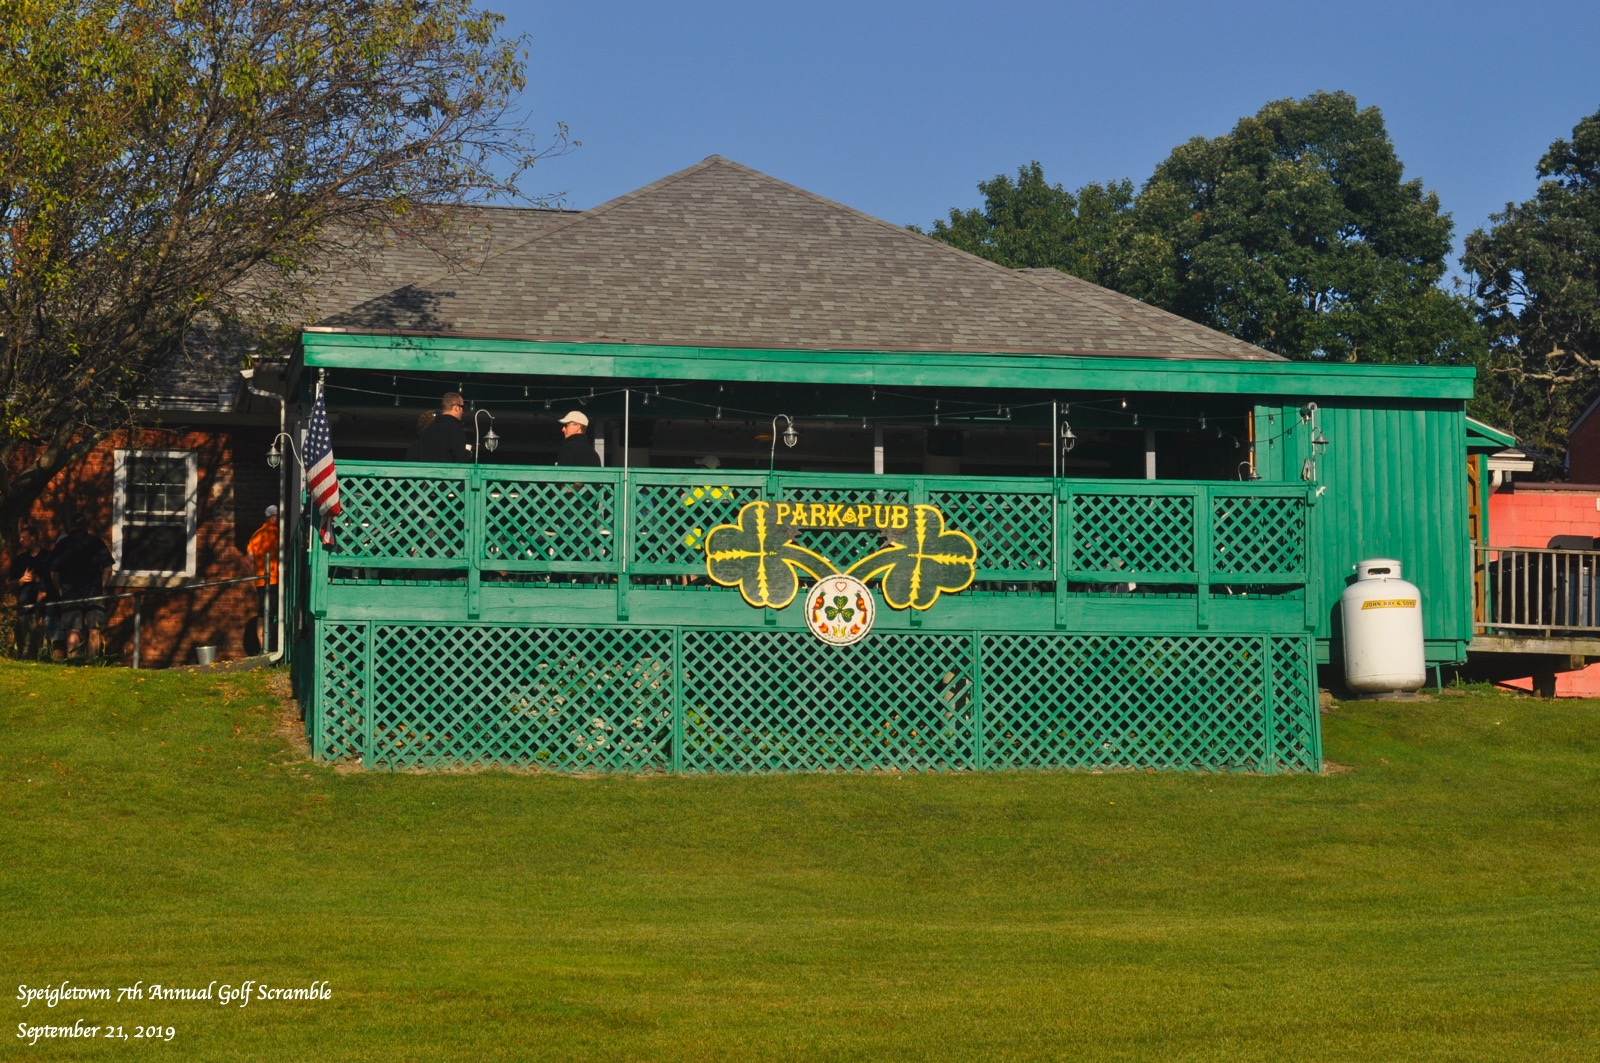 Speigletown Golf Scramble 2019_6